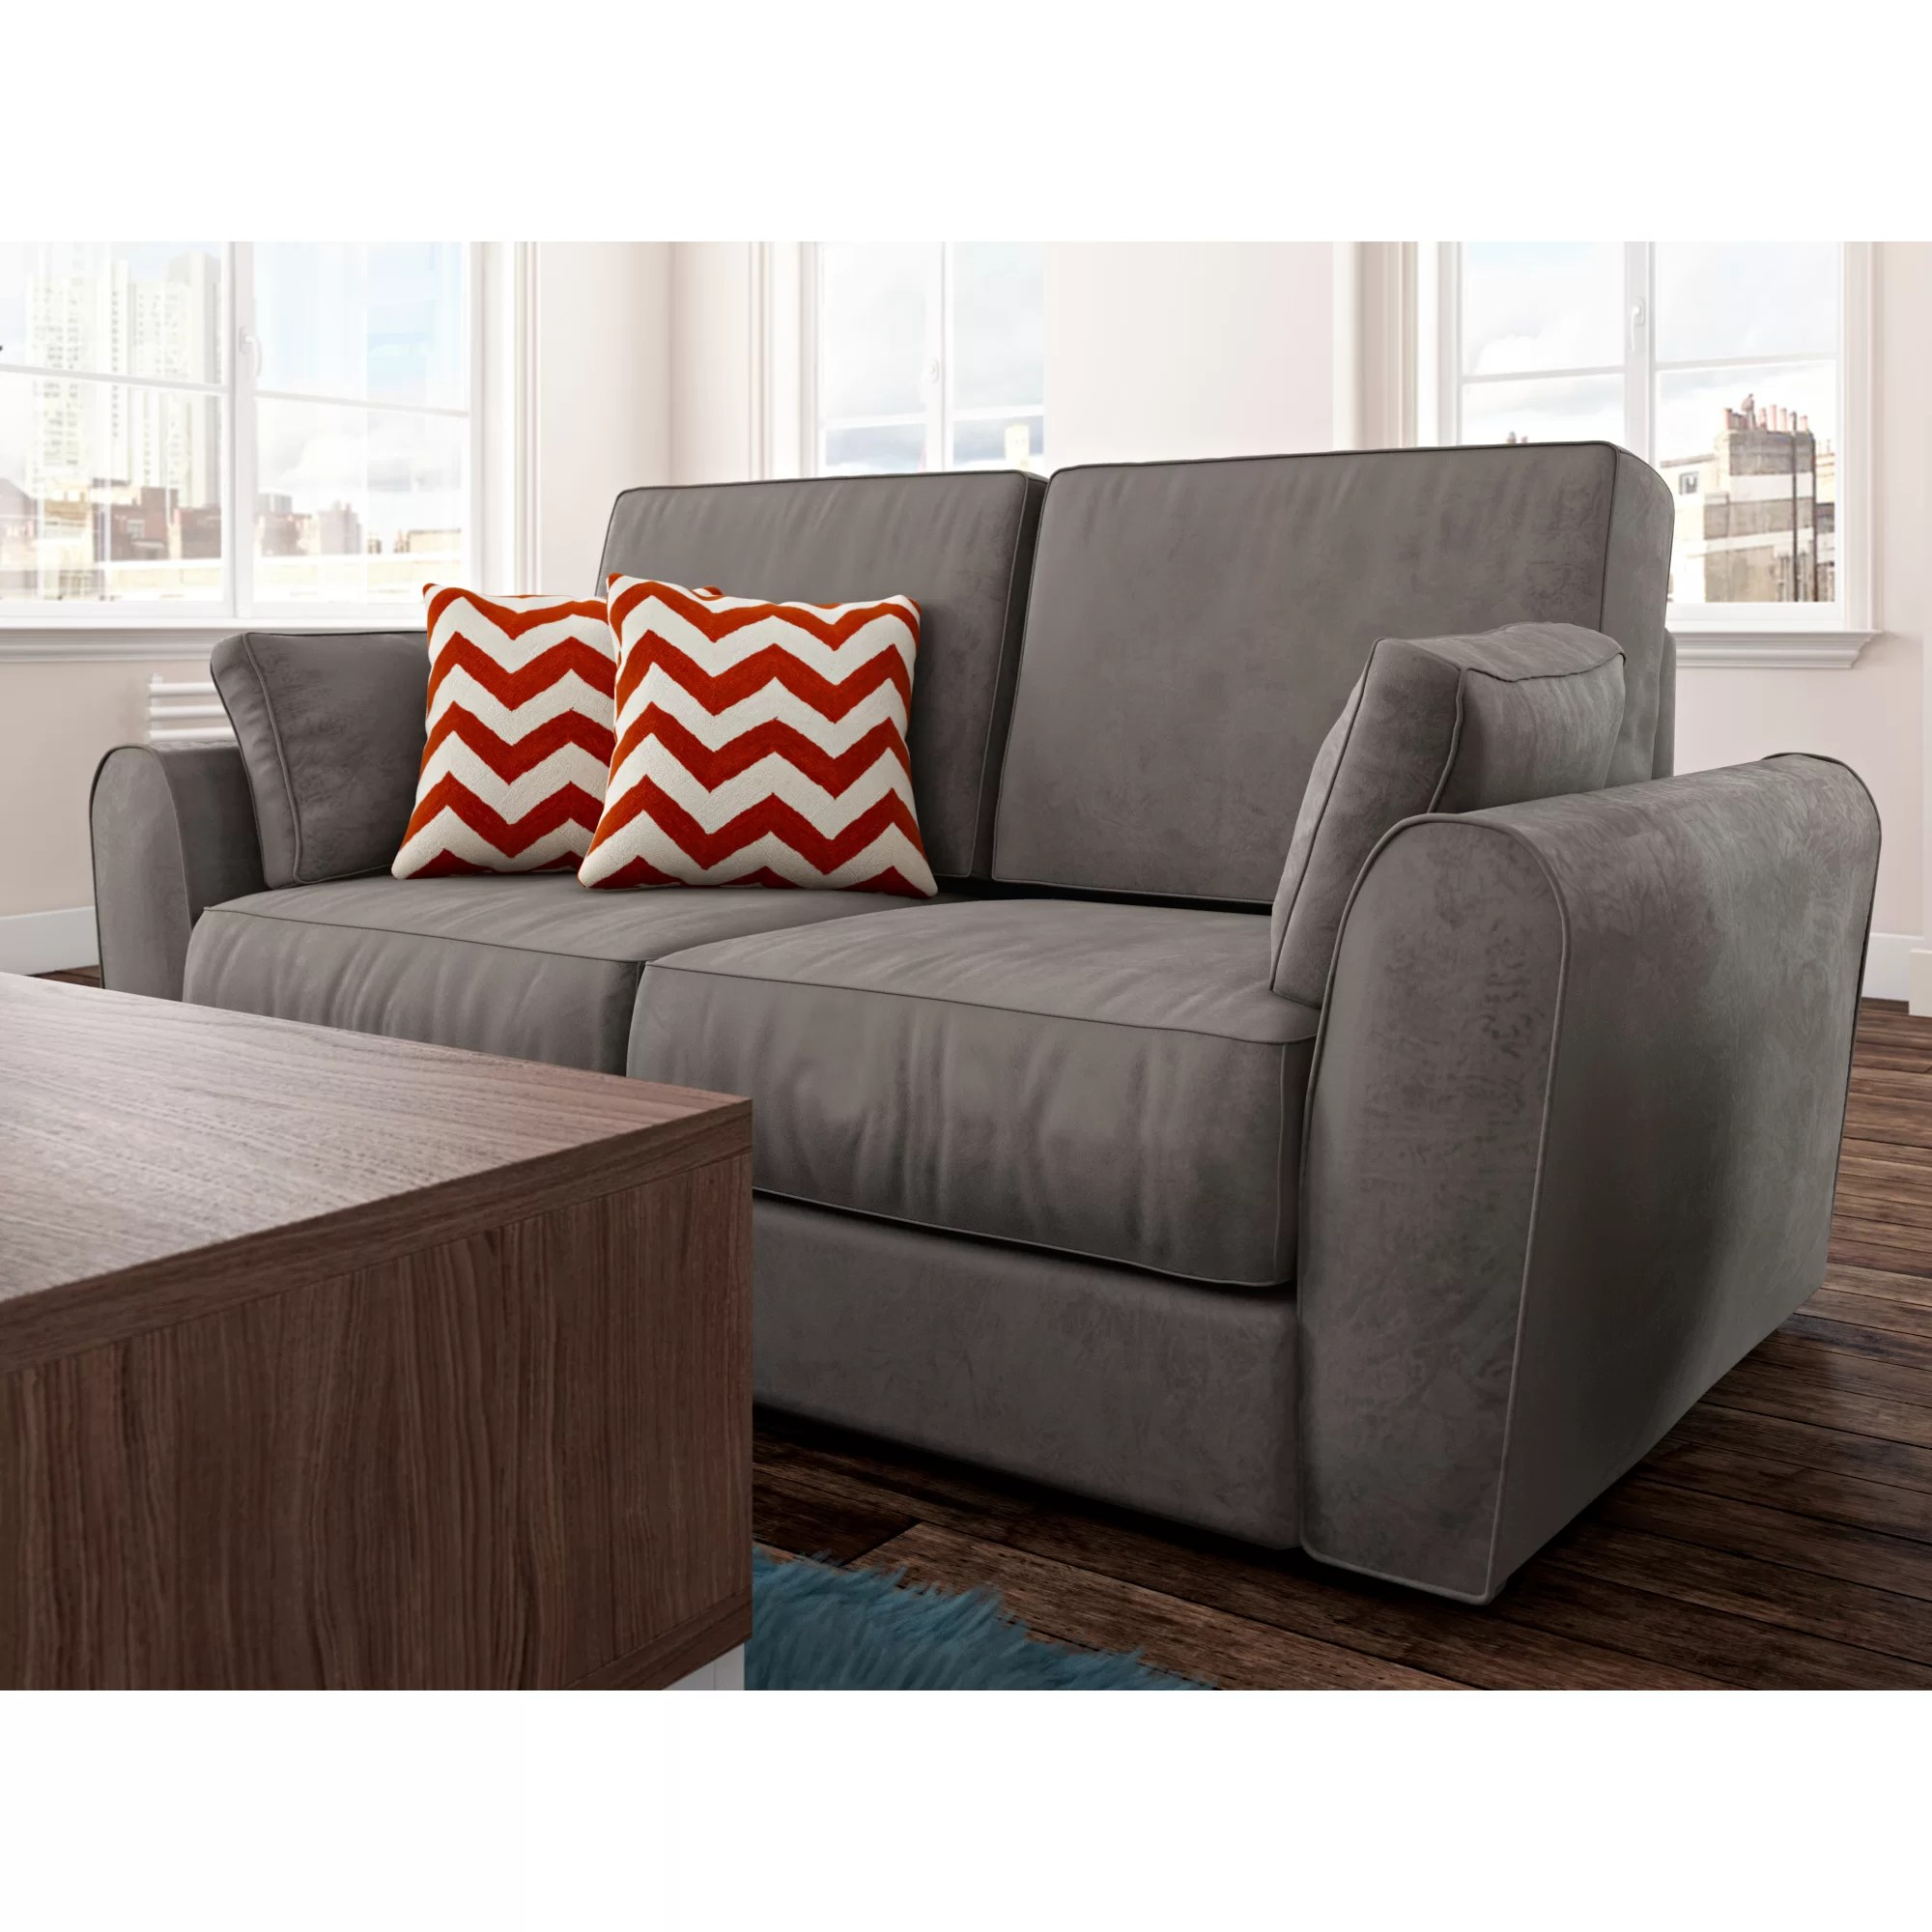 flip chair bed cheap covers auckland fold out down guest